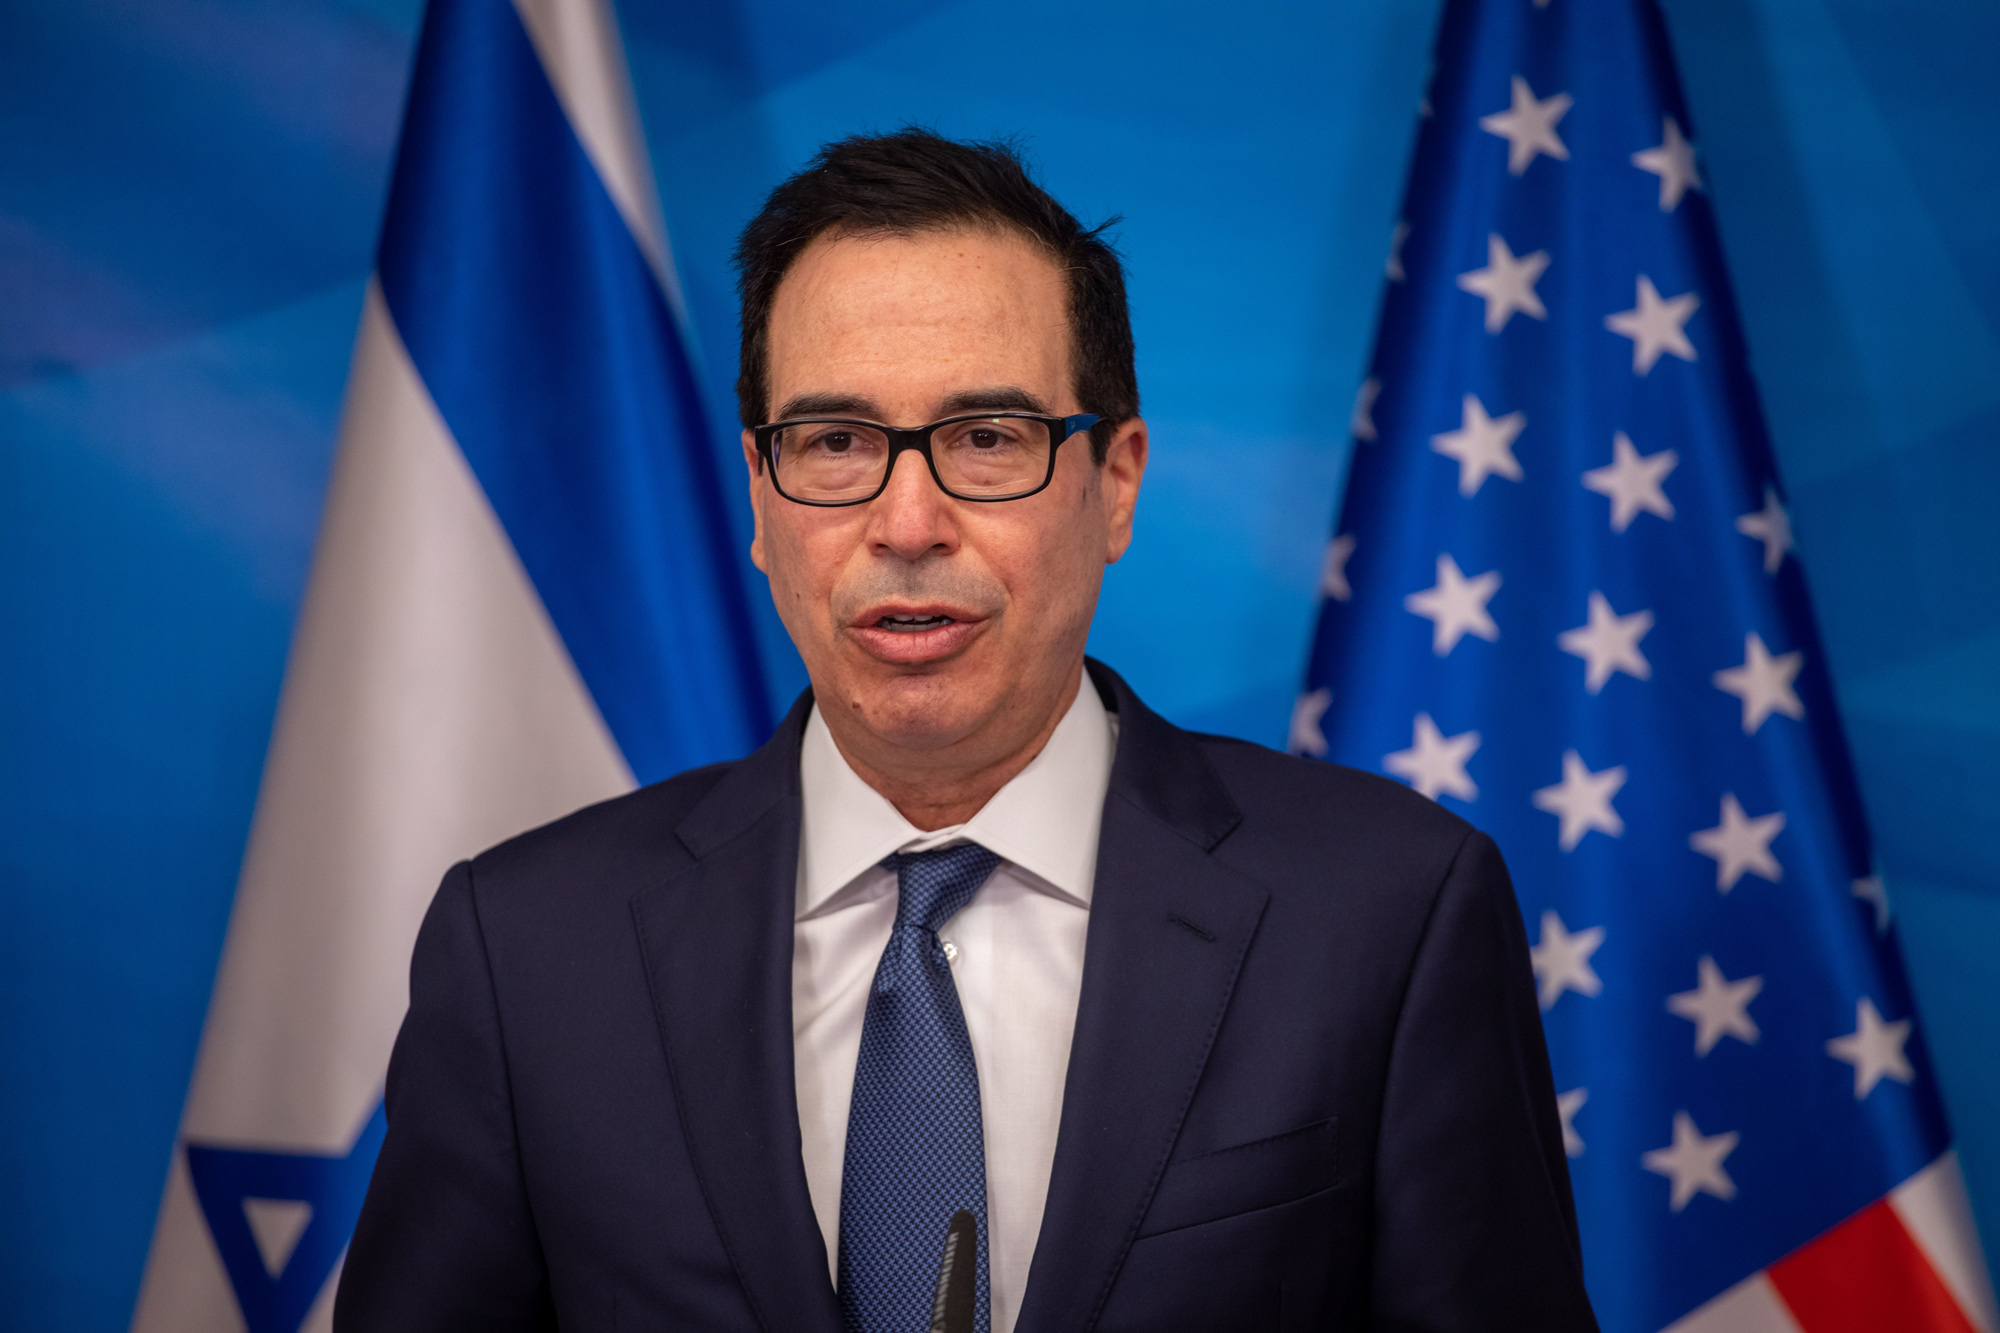 Treasury Secretary Steven Mnuchin gives a statement following his meeting meeting with the Israeli prime minister in Jerusalem, on January 7.